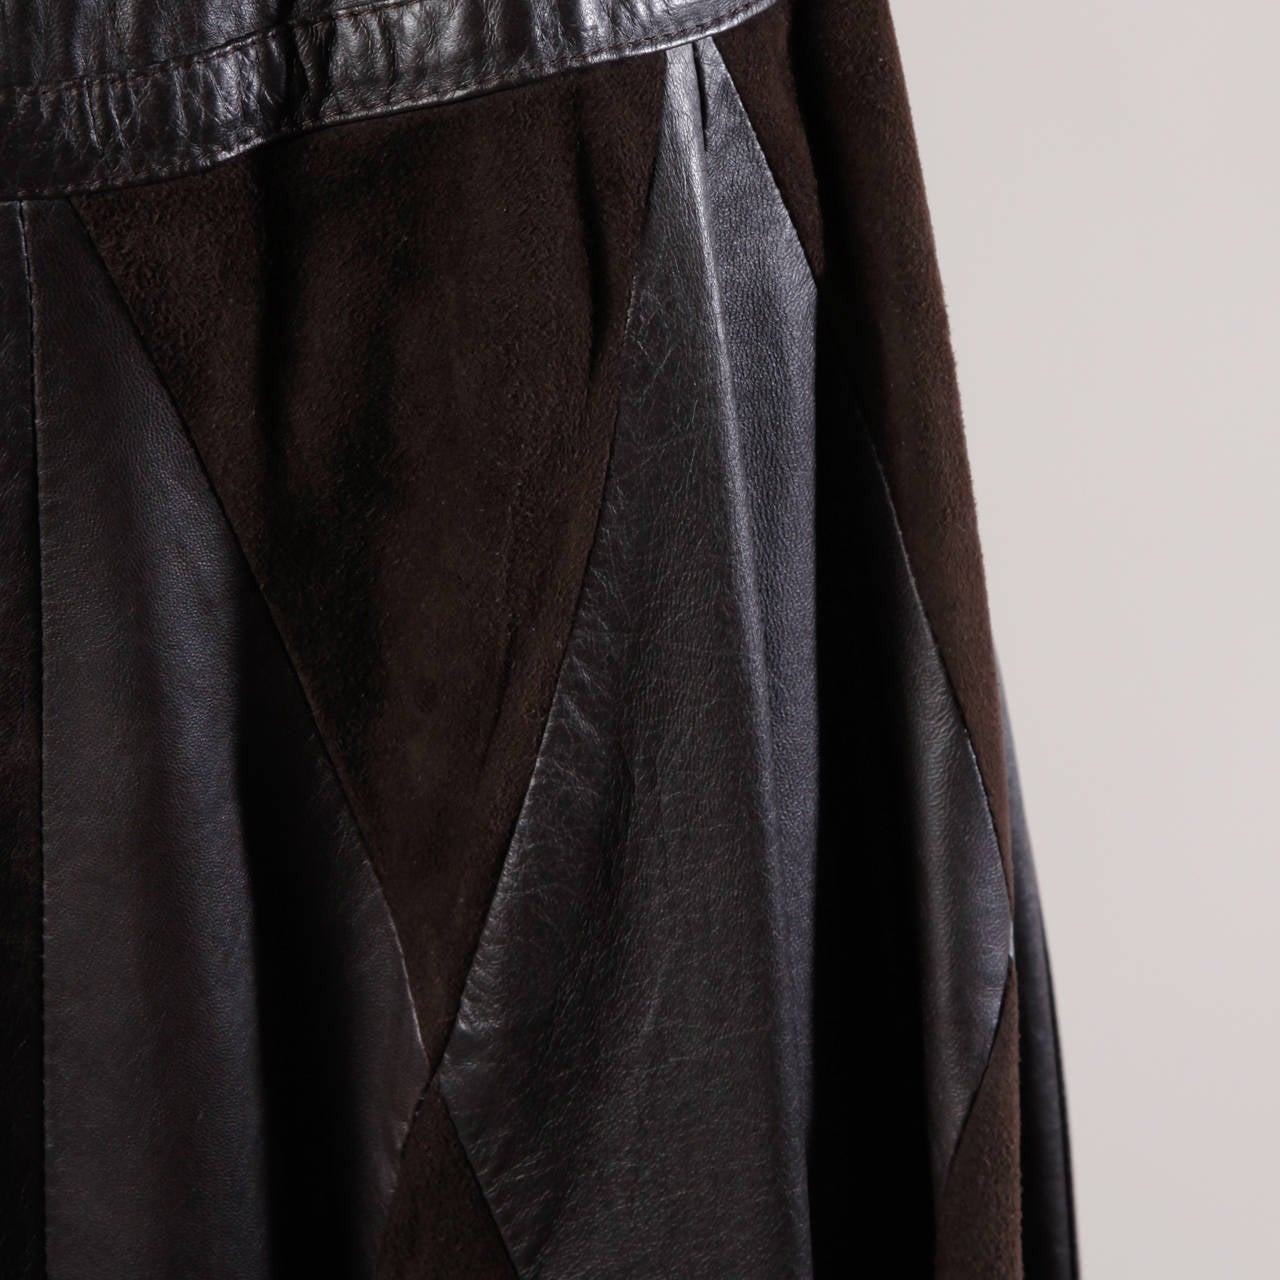 Women's Vintage Soft Buttery Leather + Suede Patchwork Maxi Skirt with a Full Sweep For Sale